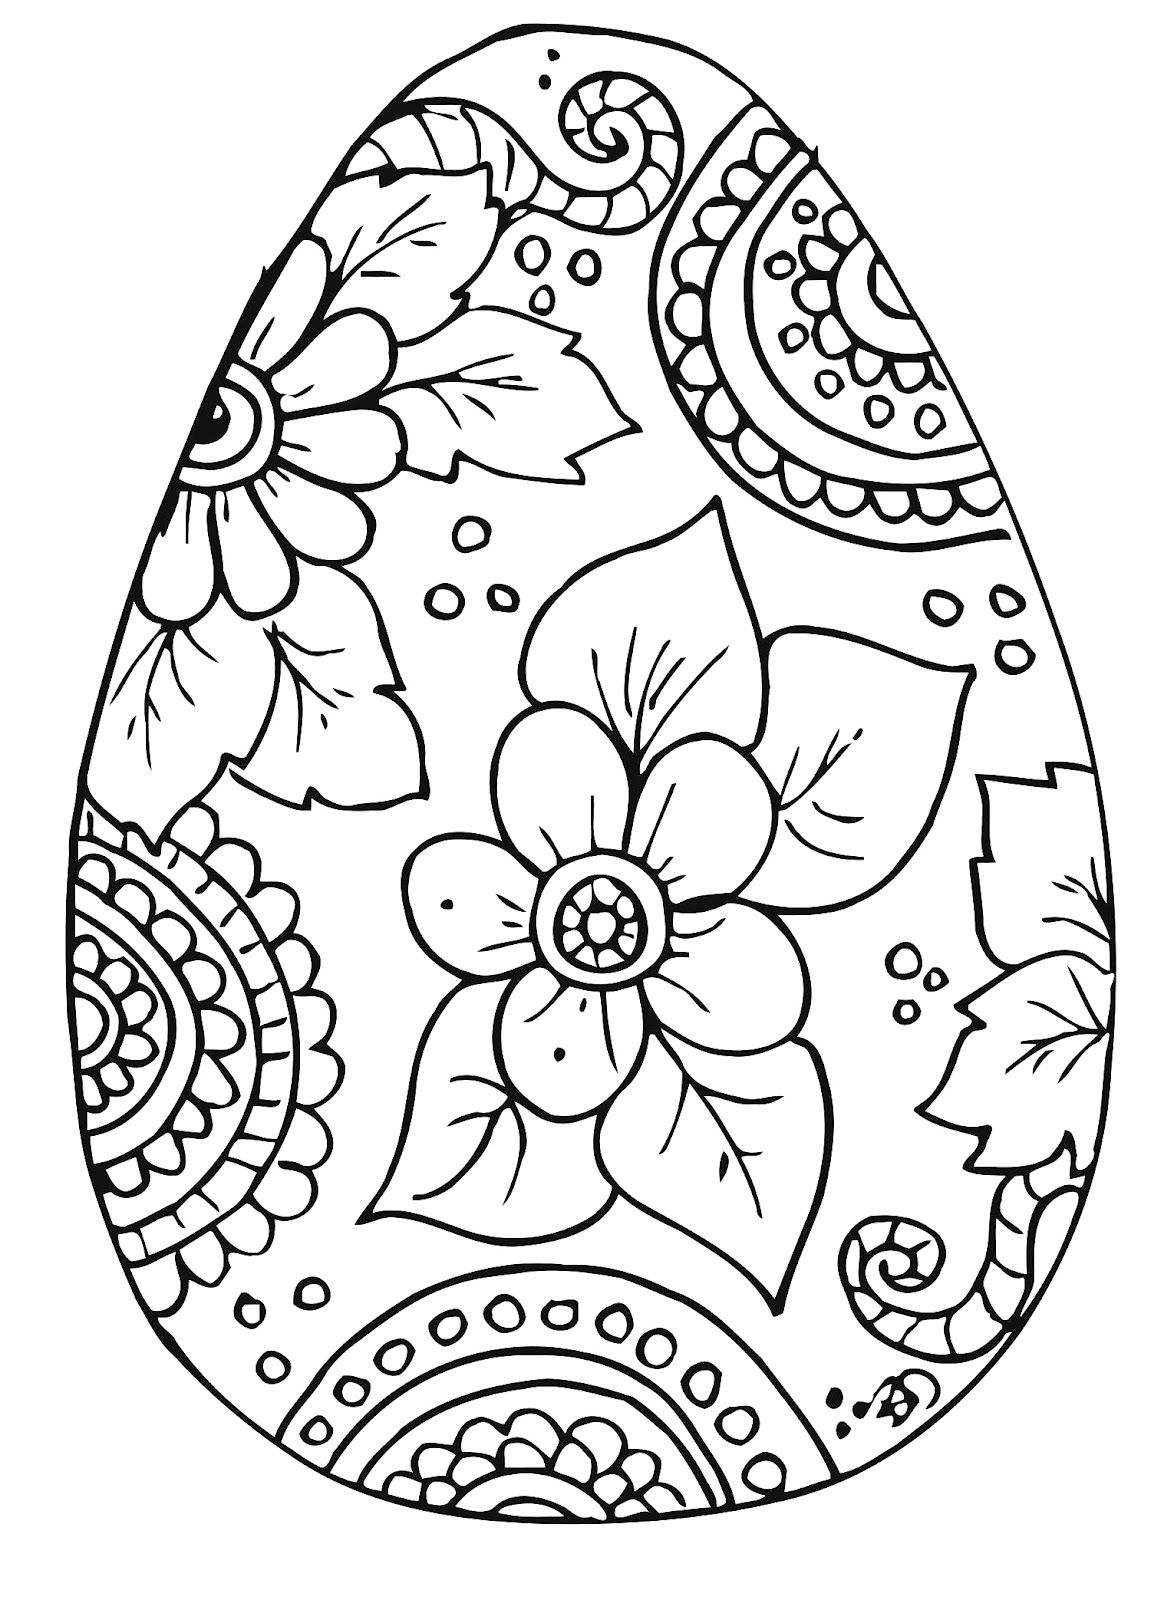 coloring book pages for easter - photo#17